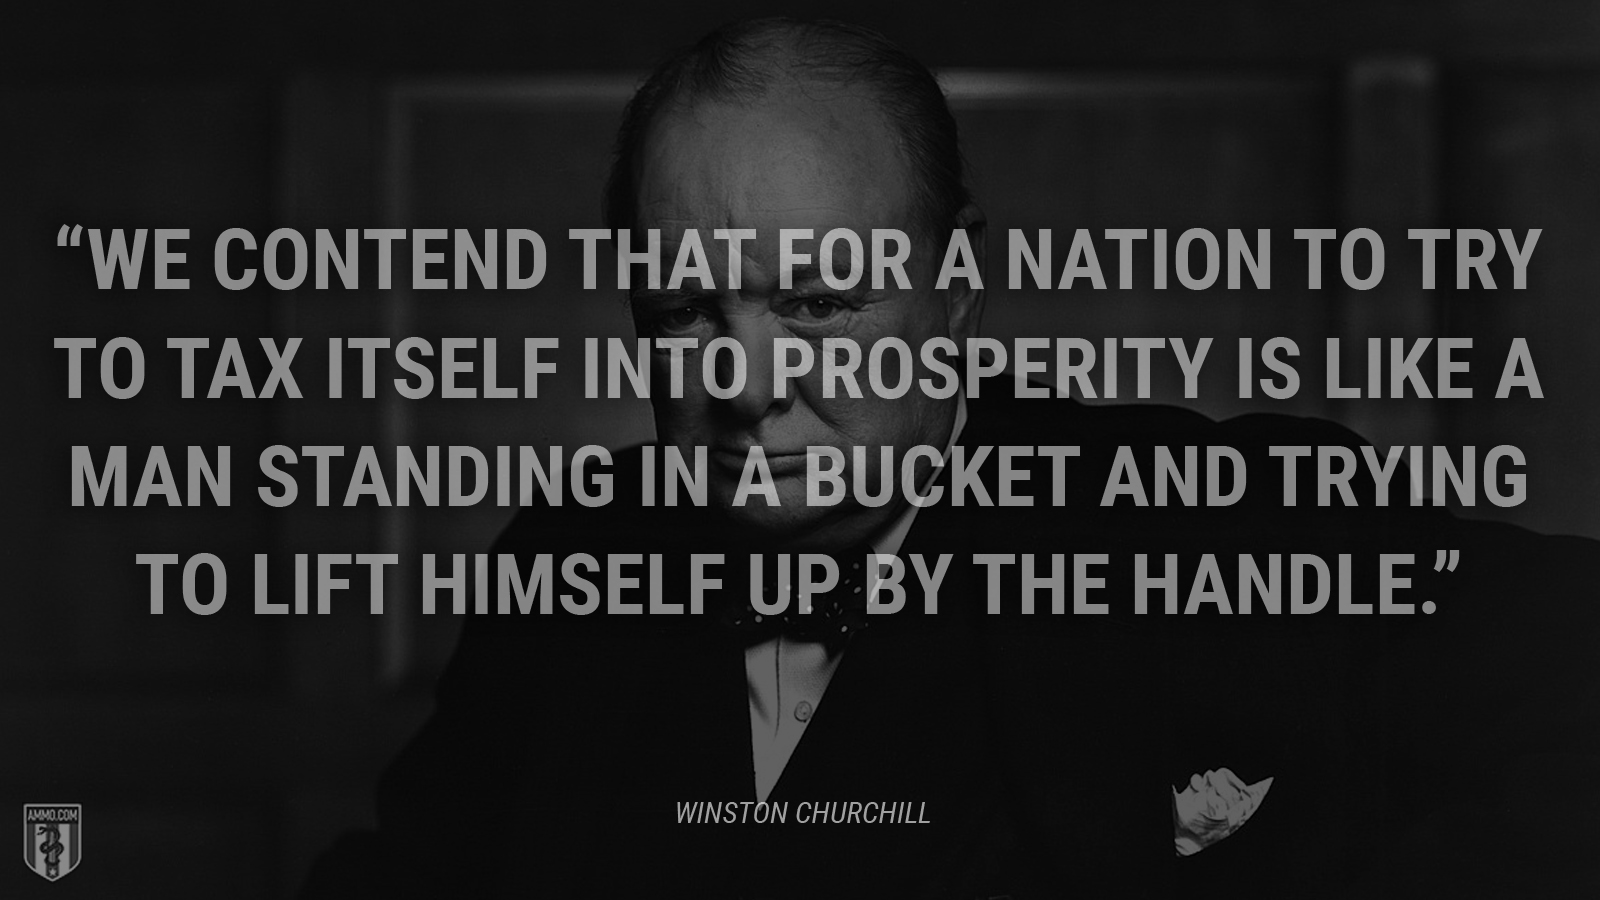 """We contend that for a nation to try to tax itself into prosperity is like a man standing in a bucket and trying to lift himself up by the handle."" - Winston Churchill"